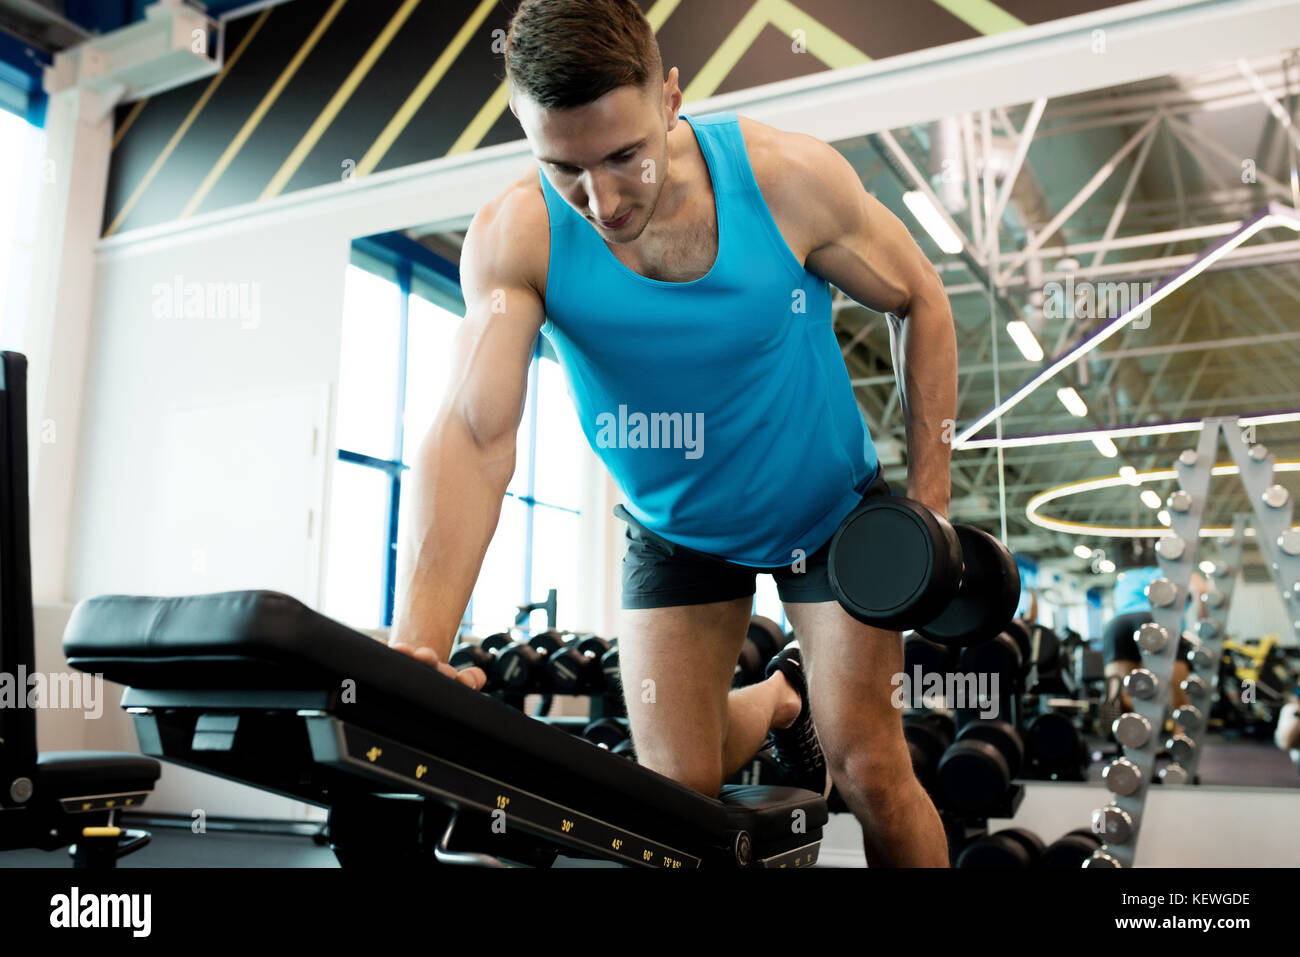 Handsome Man Working Out with Dumbbells - Stock Image